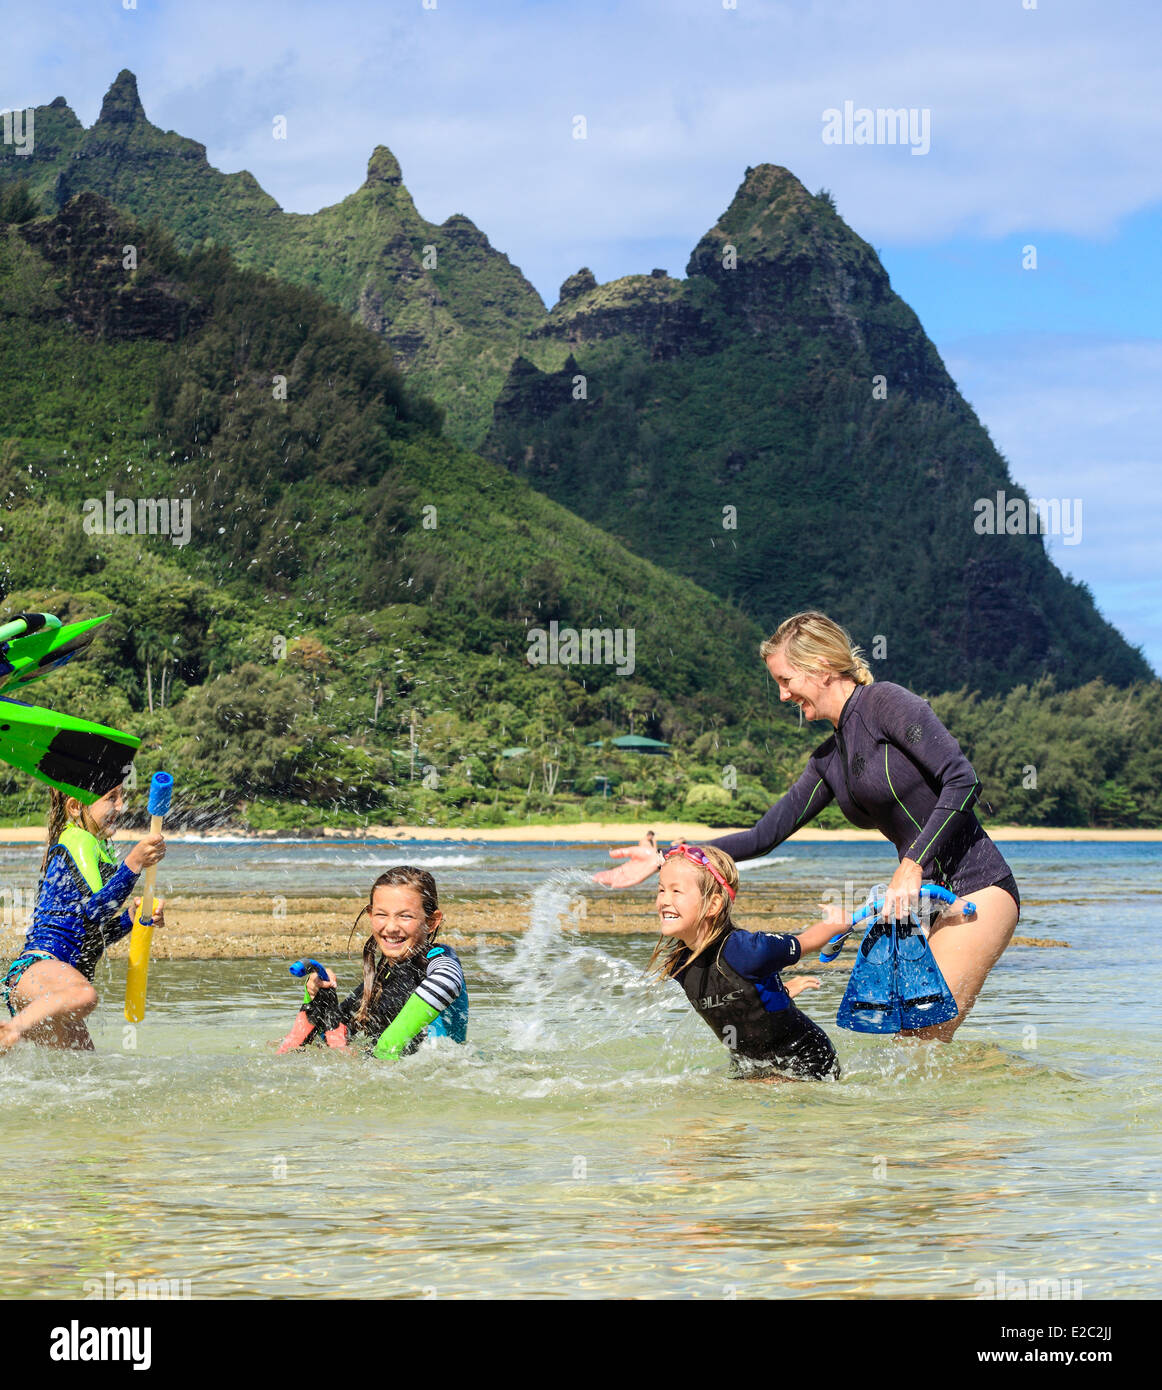 Family having fun splashing each other at Tunnels Beach on Kauai - Stock Image